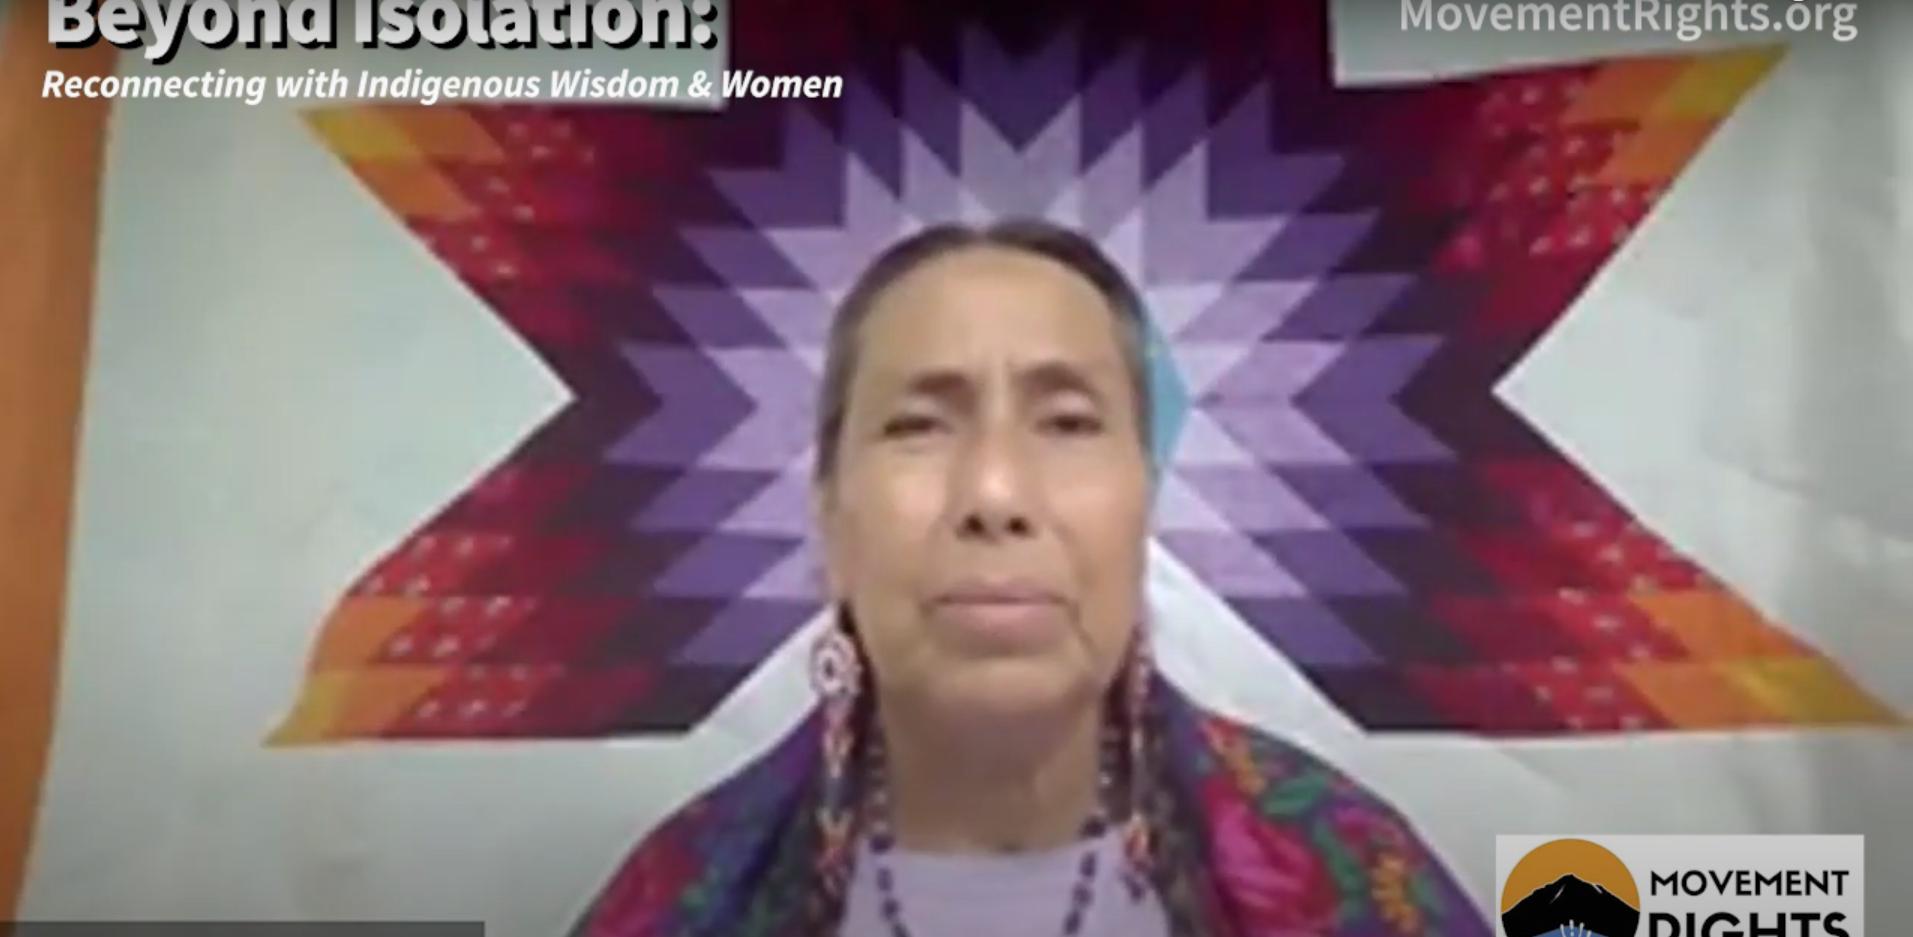 Beyond Isolation: Reconnecting with Indigenous Wisdom & Women